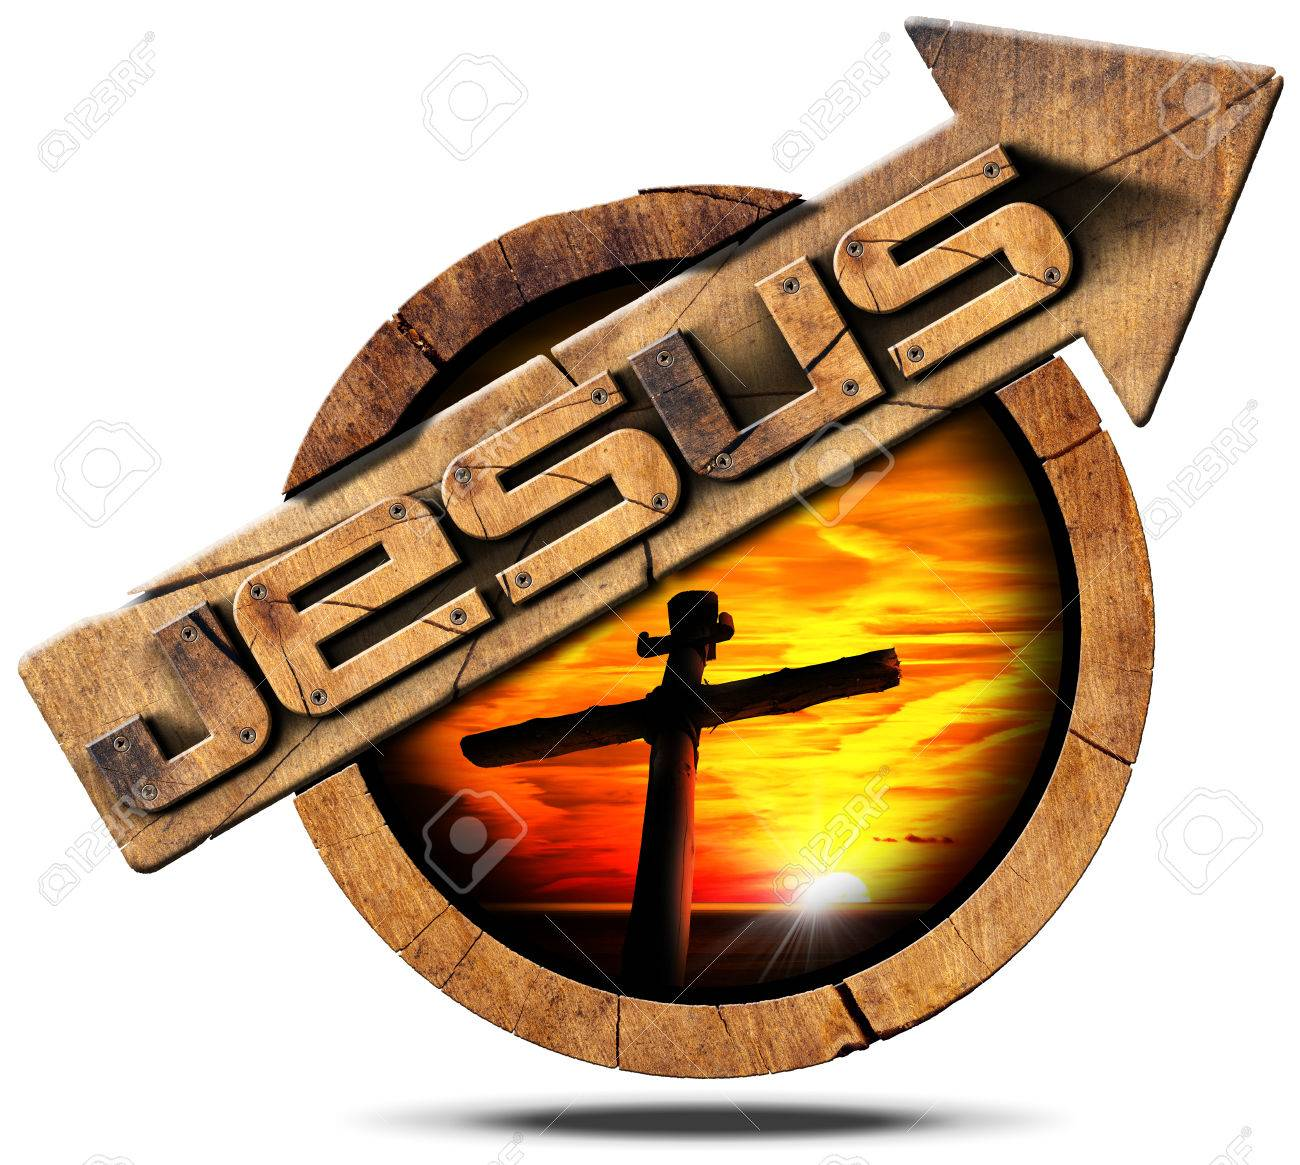 Wooden Signage With Arrow And Text Jesus Cross Silhouette At